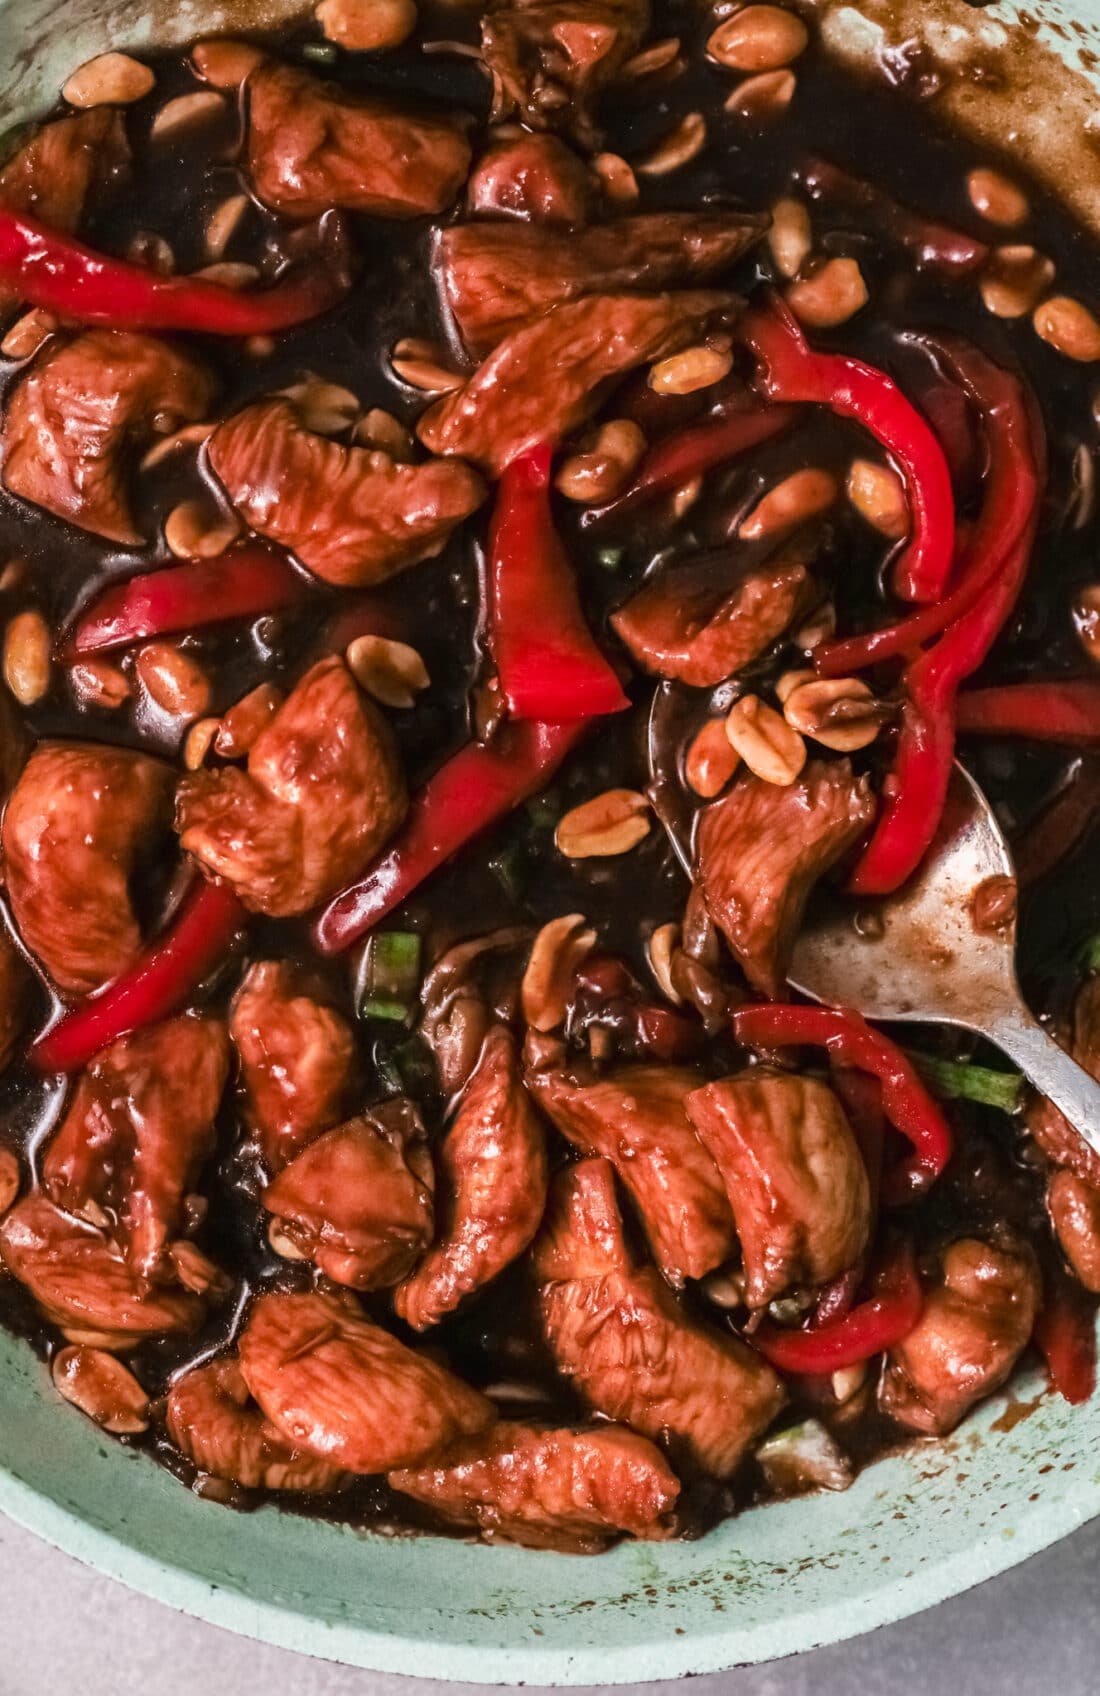 Better than Chinese takeout, make this Kung Pao Chicken at home. Upclose shot of the finished Kung Pao Chicken dish displaying the red bell peppers, chicken pieces in the savory sauce.